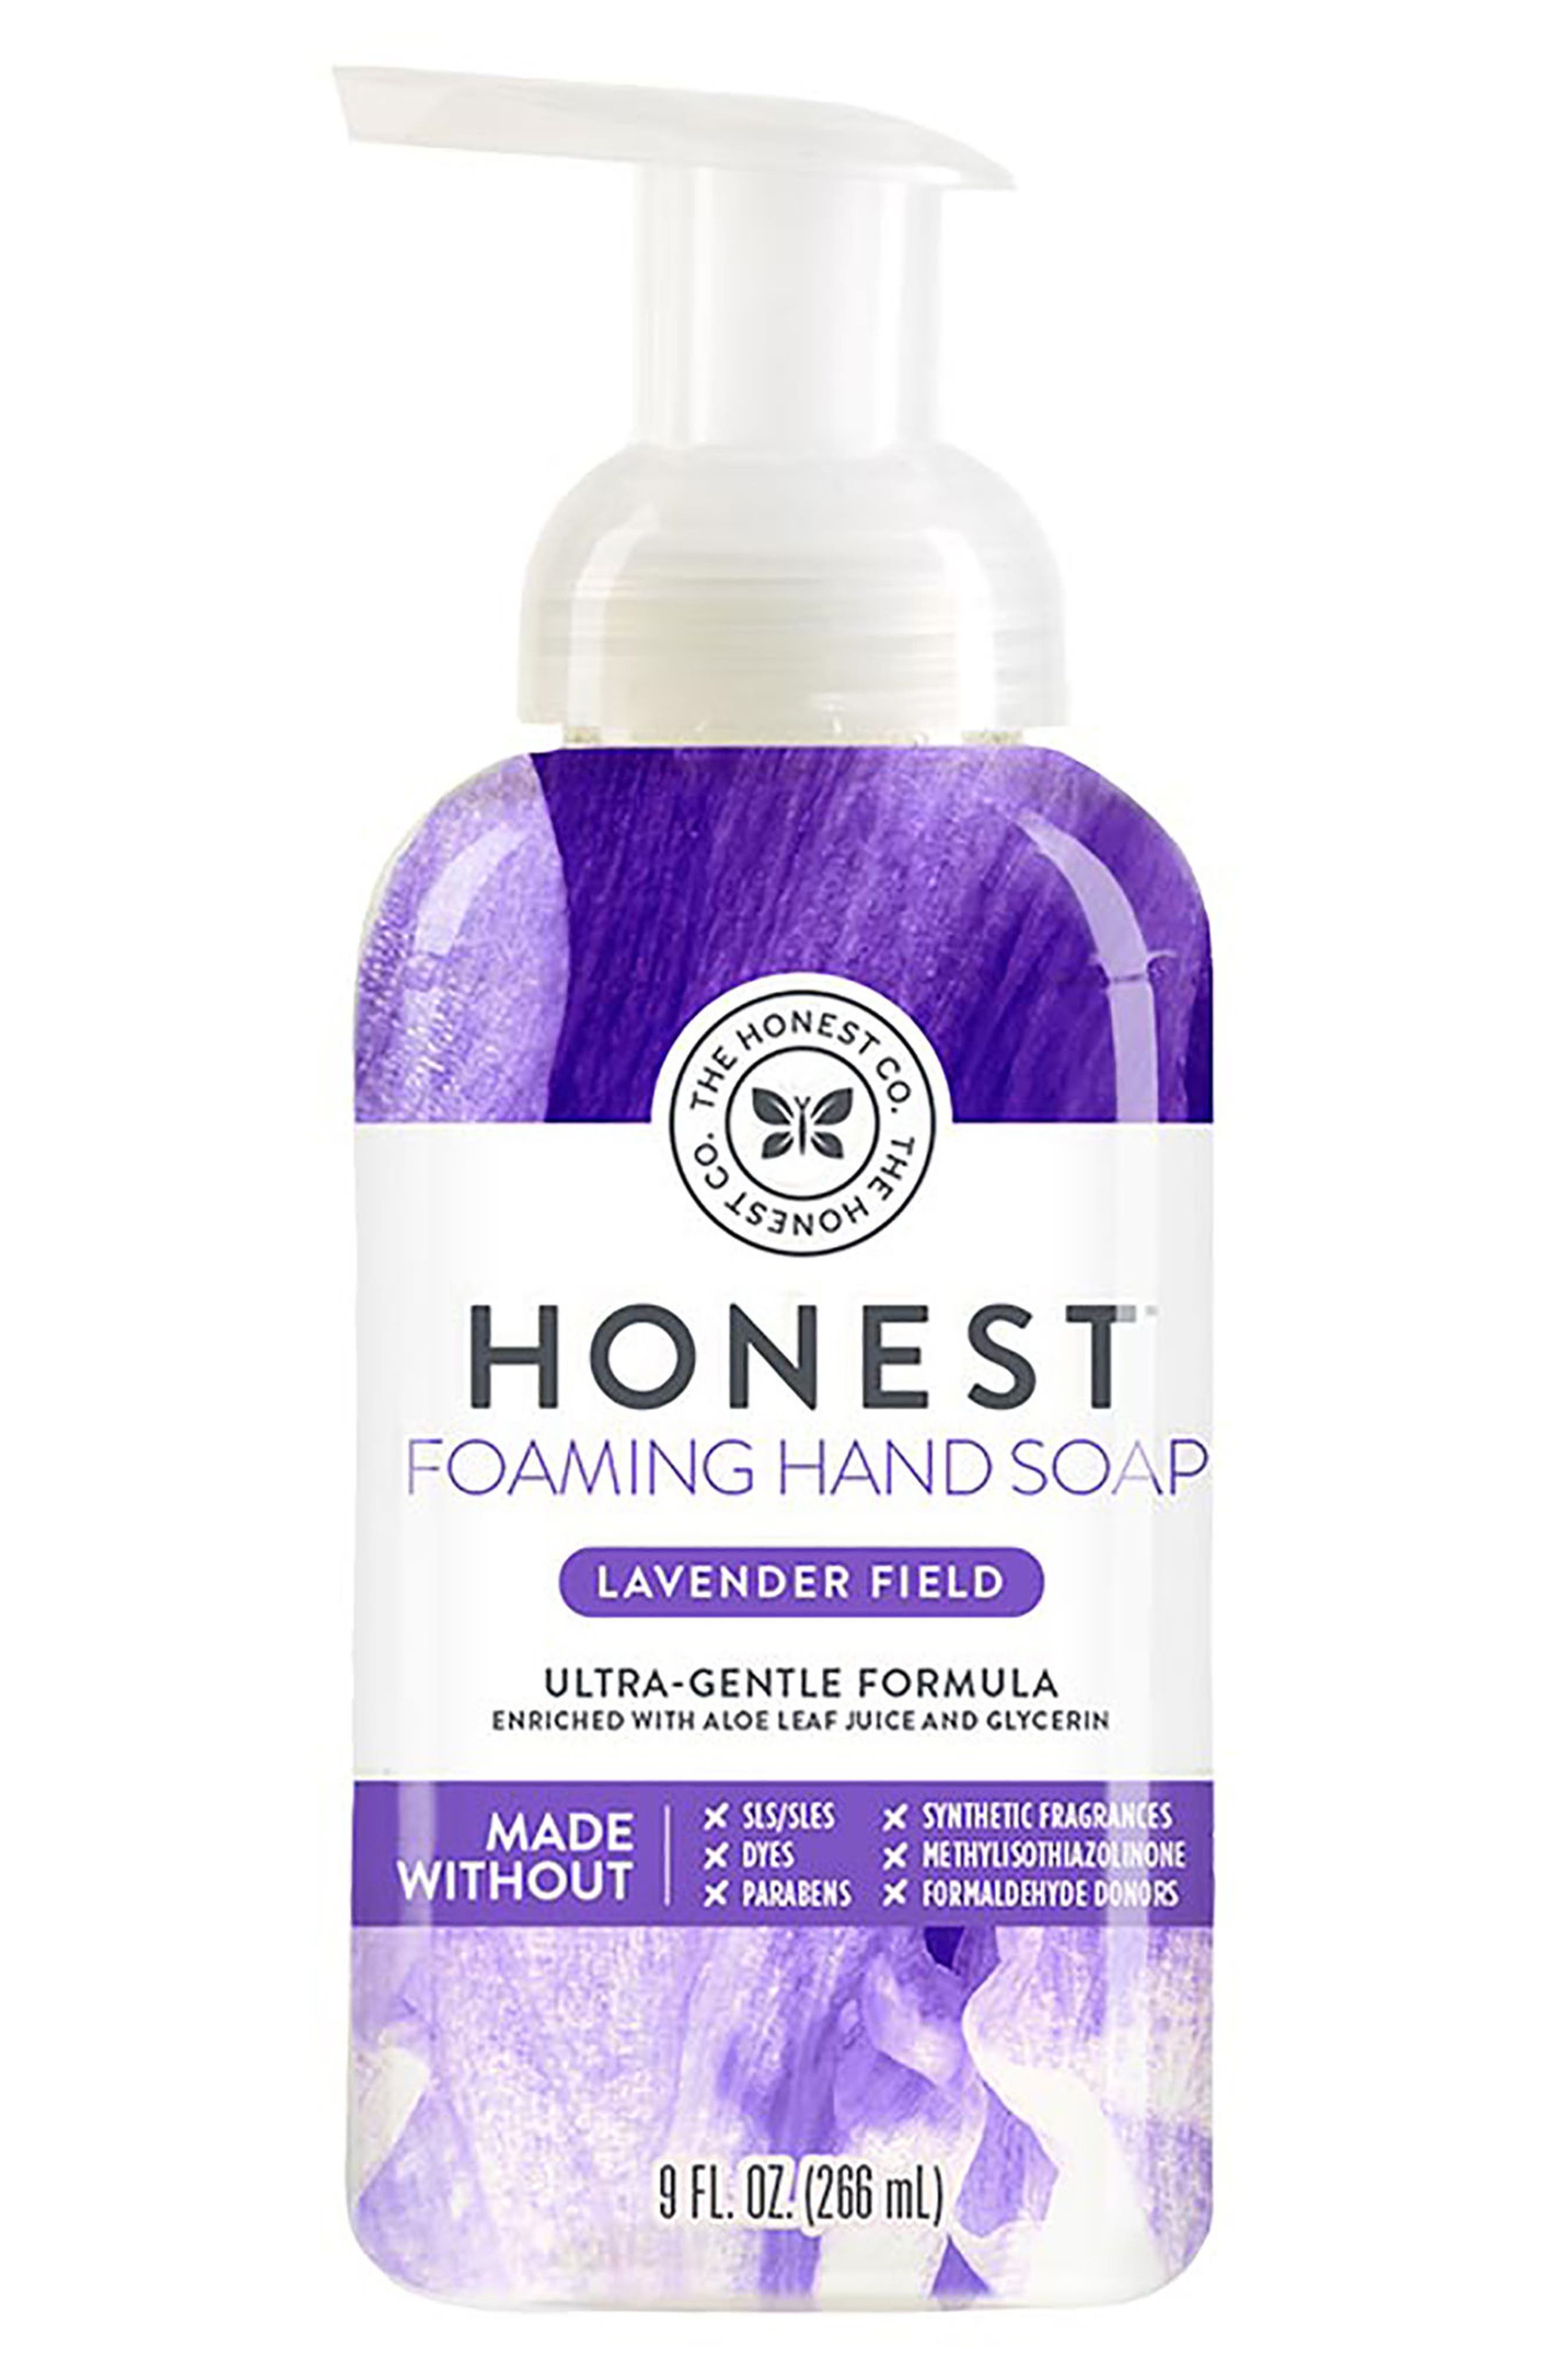 The Honest Company Lavender Field Foaming Hand Soap